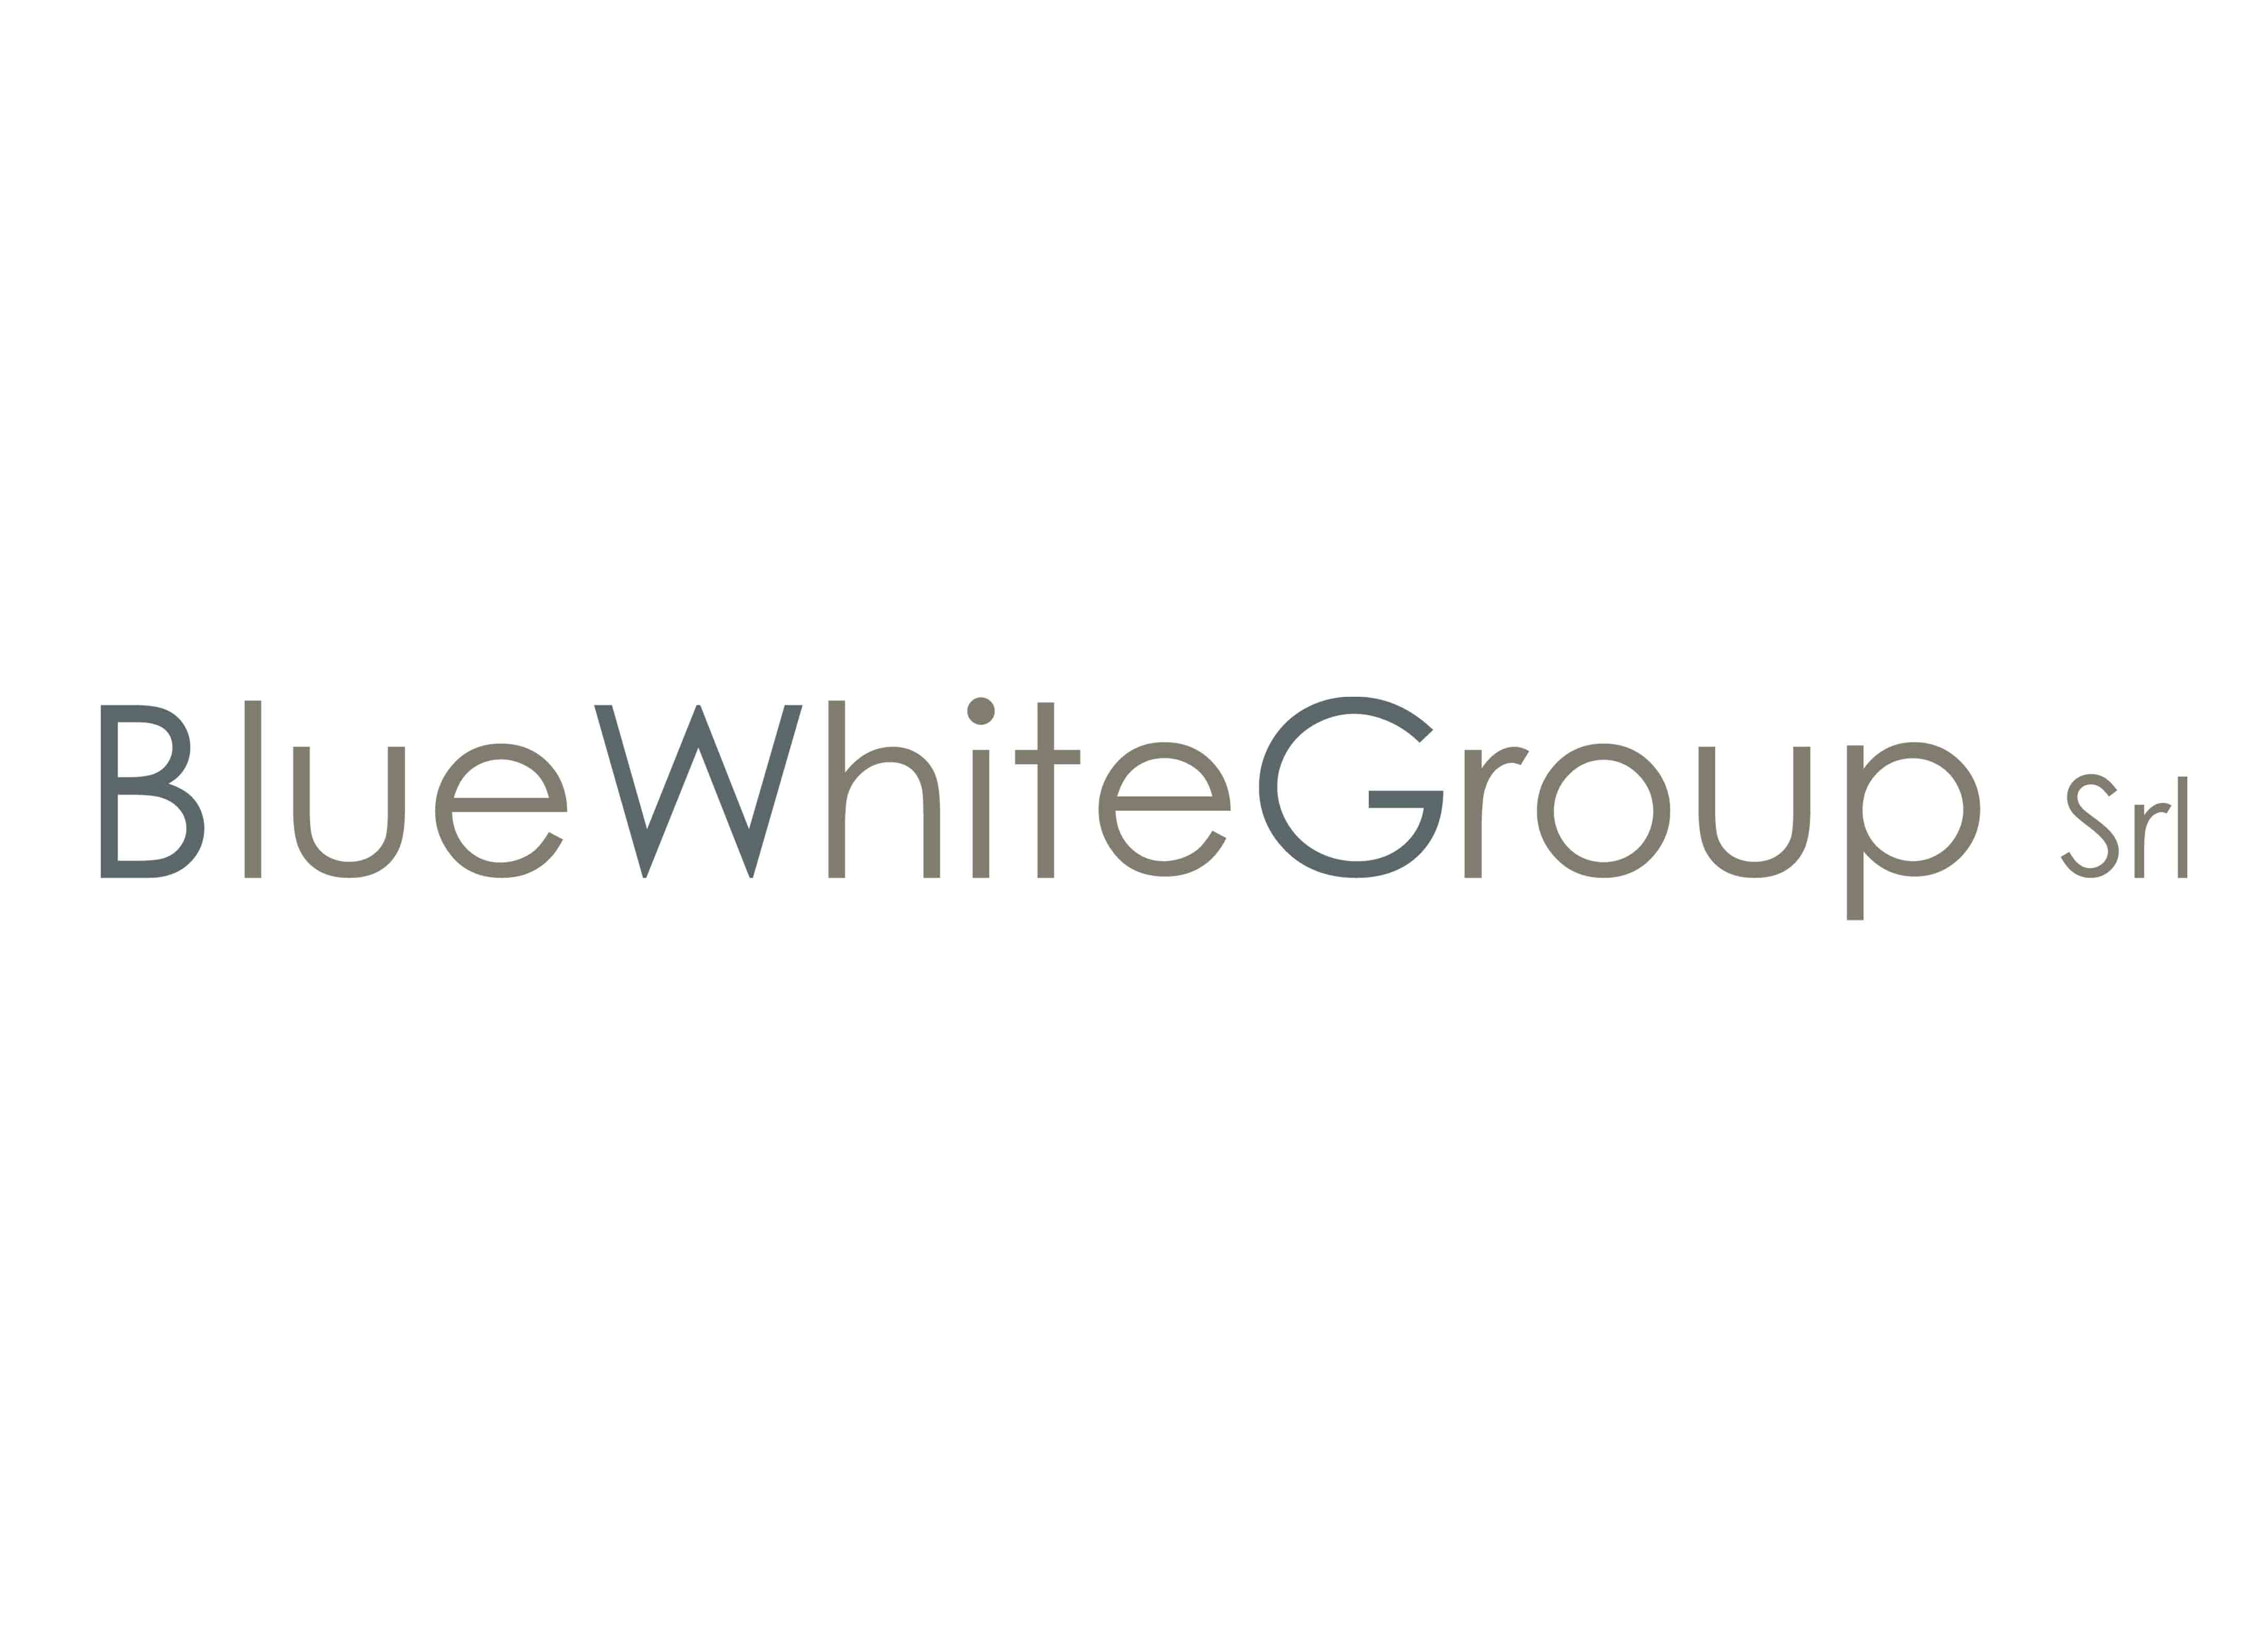 Blue White Group srl